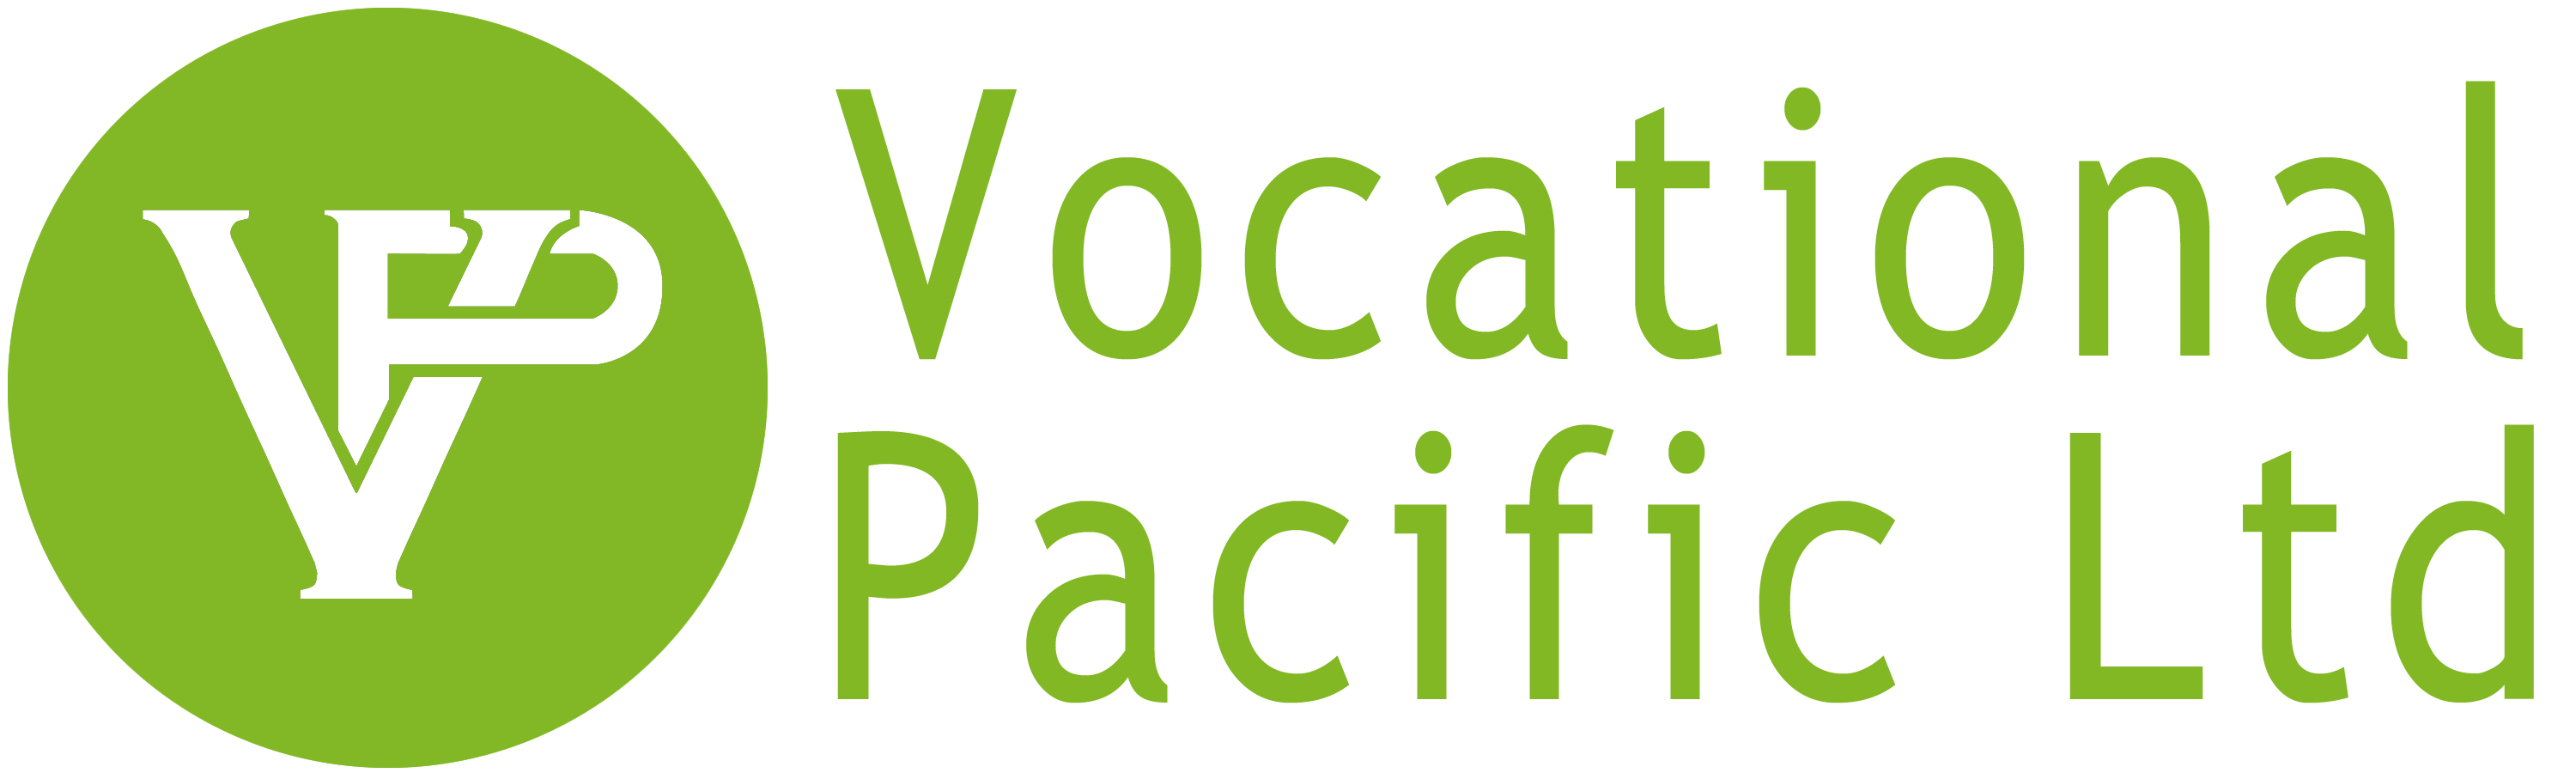 Vocational Pacific Ltd.